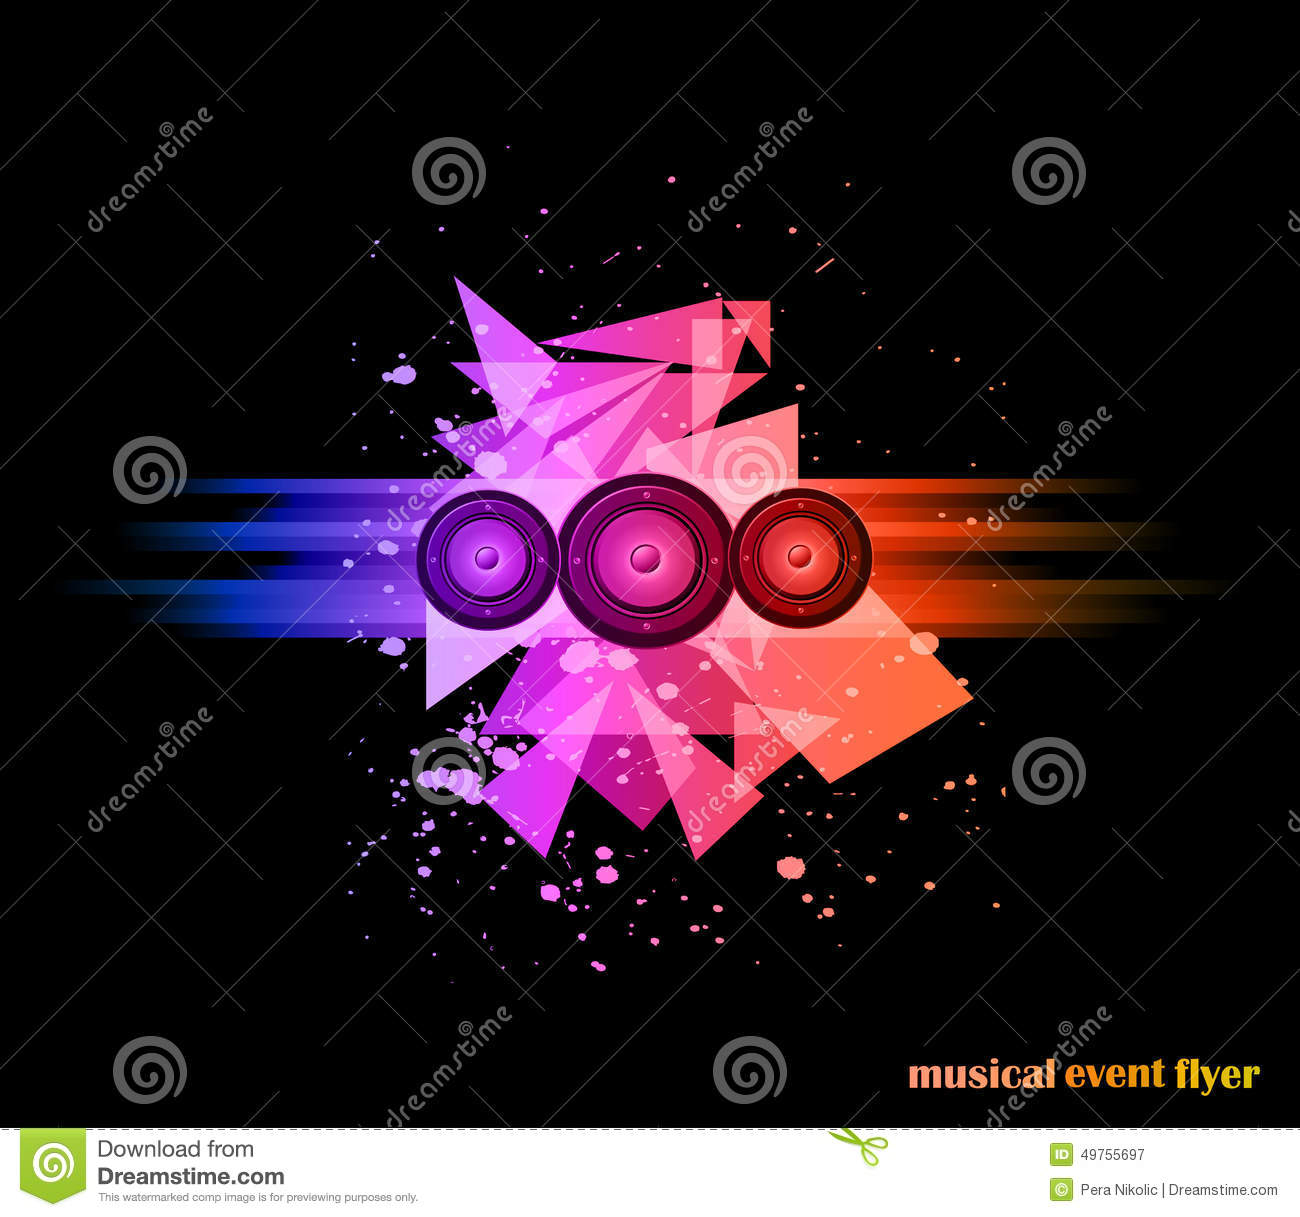 Background For Musical Event Flyer Stock Vector Illustration Of